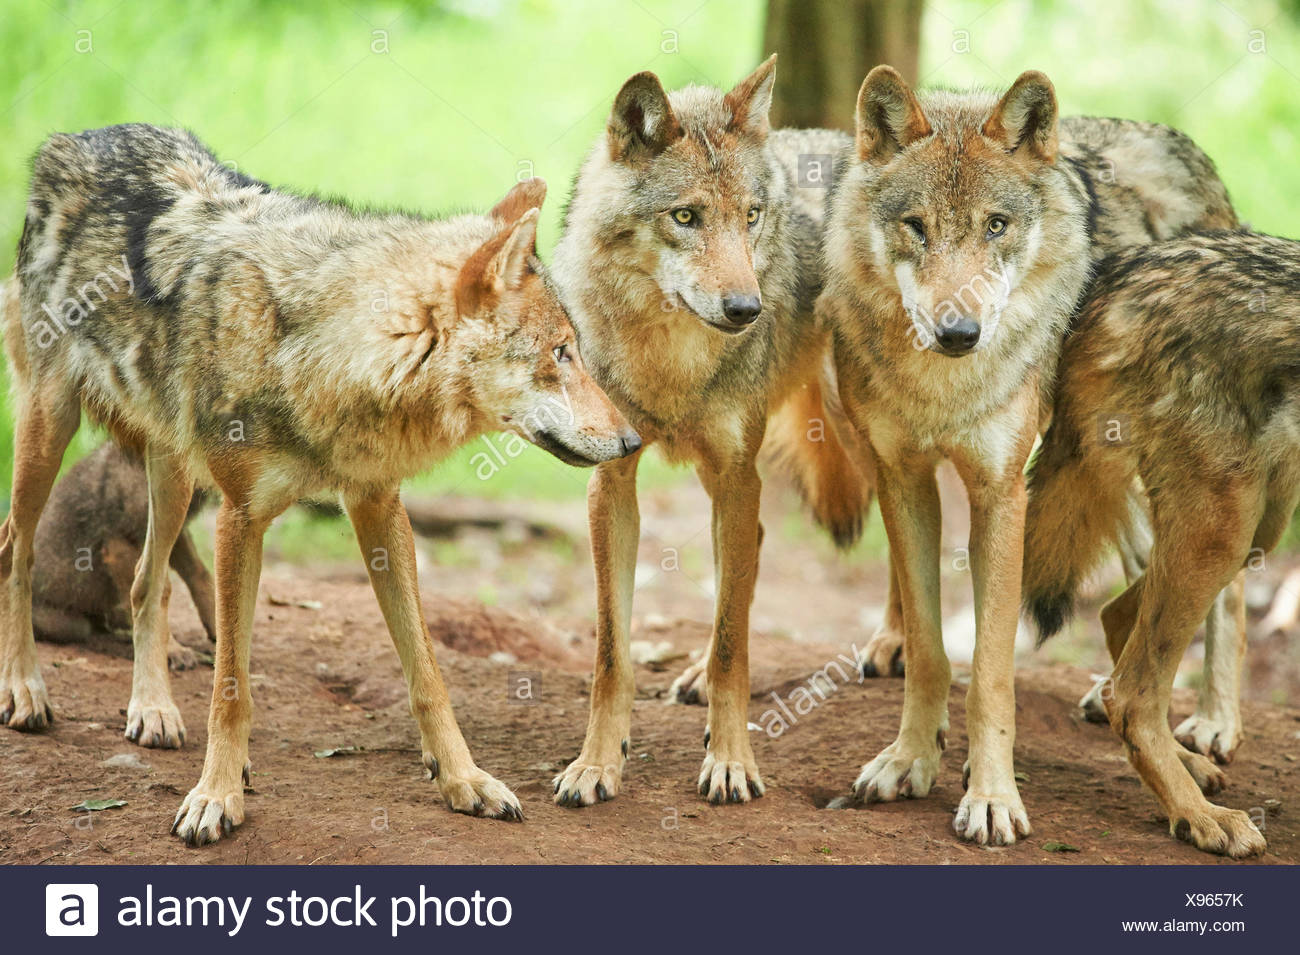 European gray wolf (Canis lupus lupus), pack of wolves in a forest, Germany, Bavaria - Stock Image